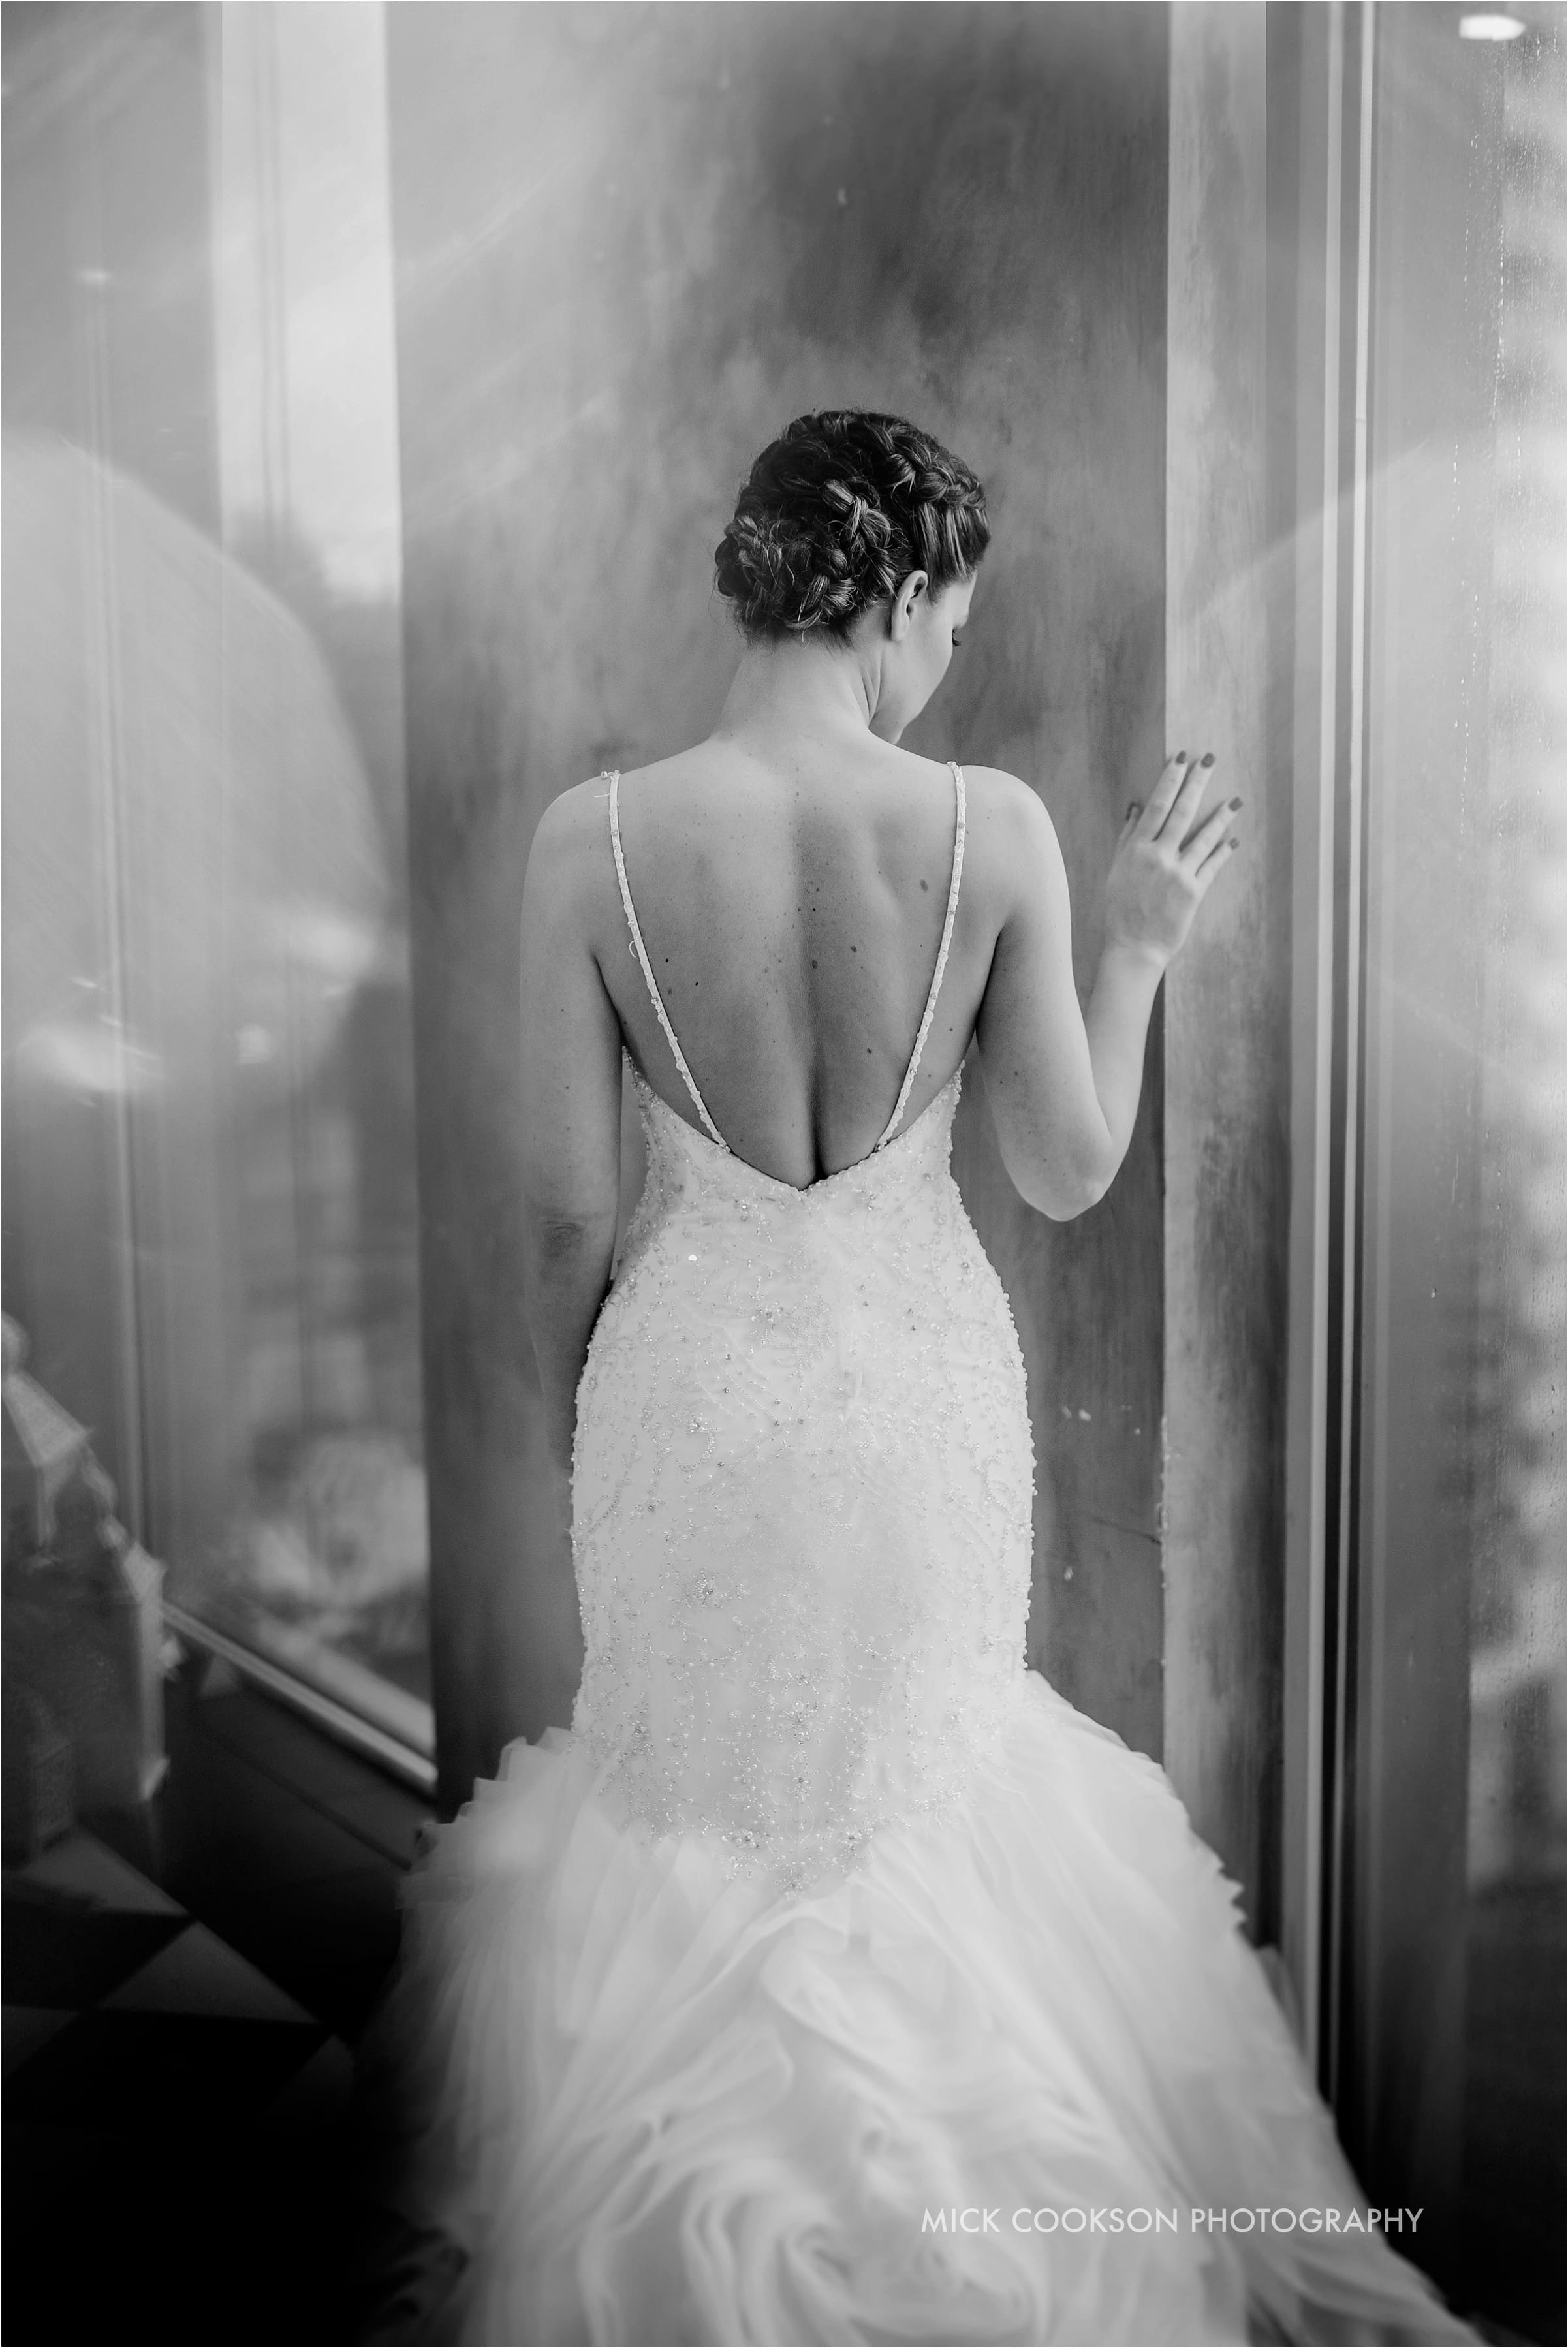 mono photo of bride at her on the 7th wedding